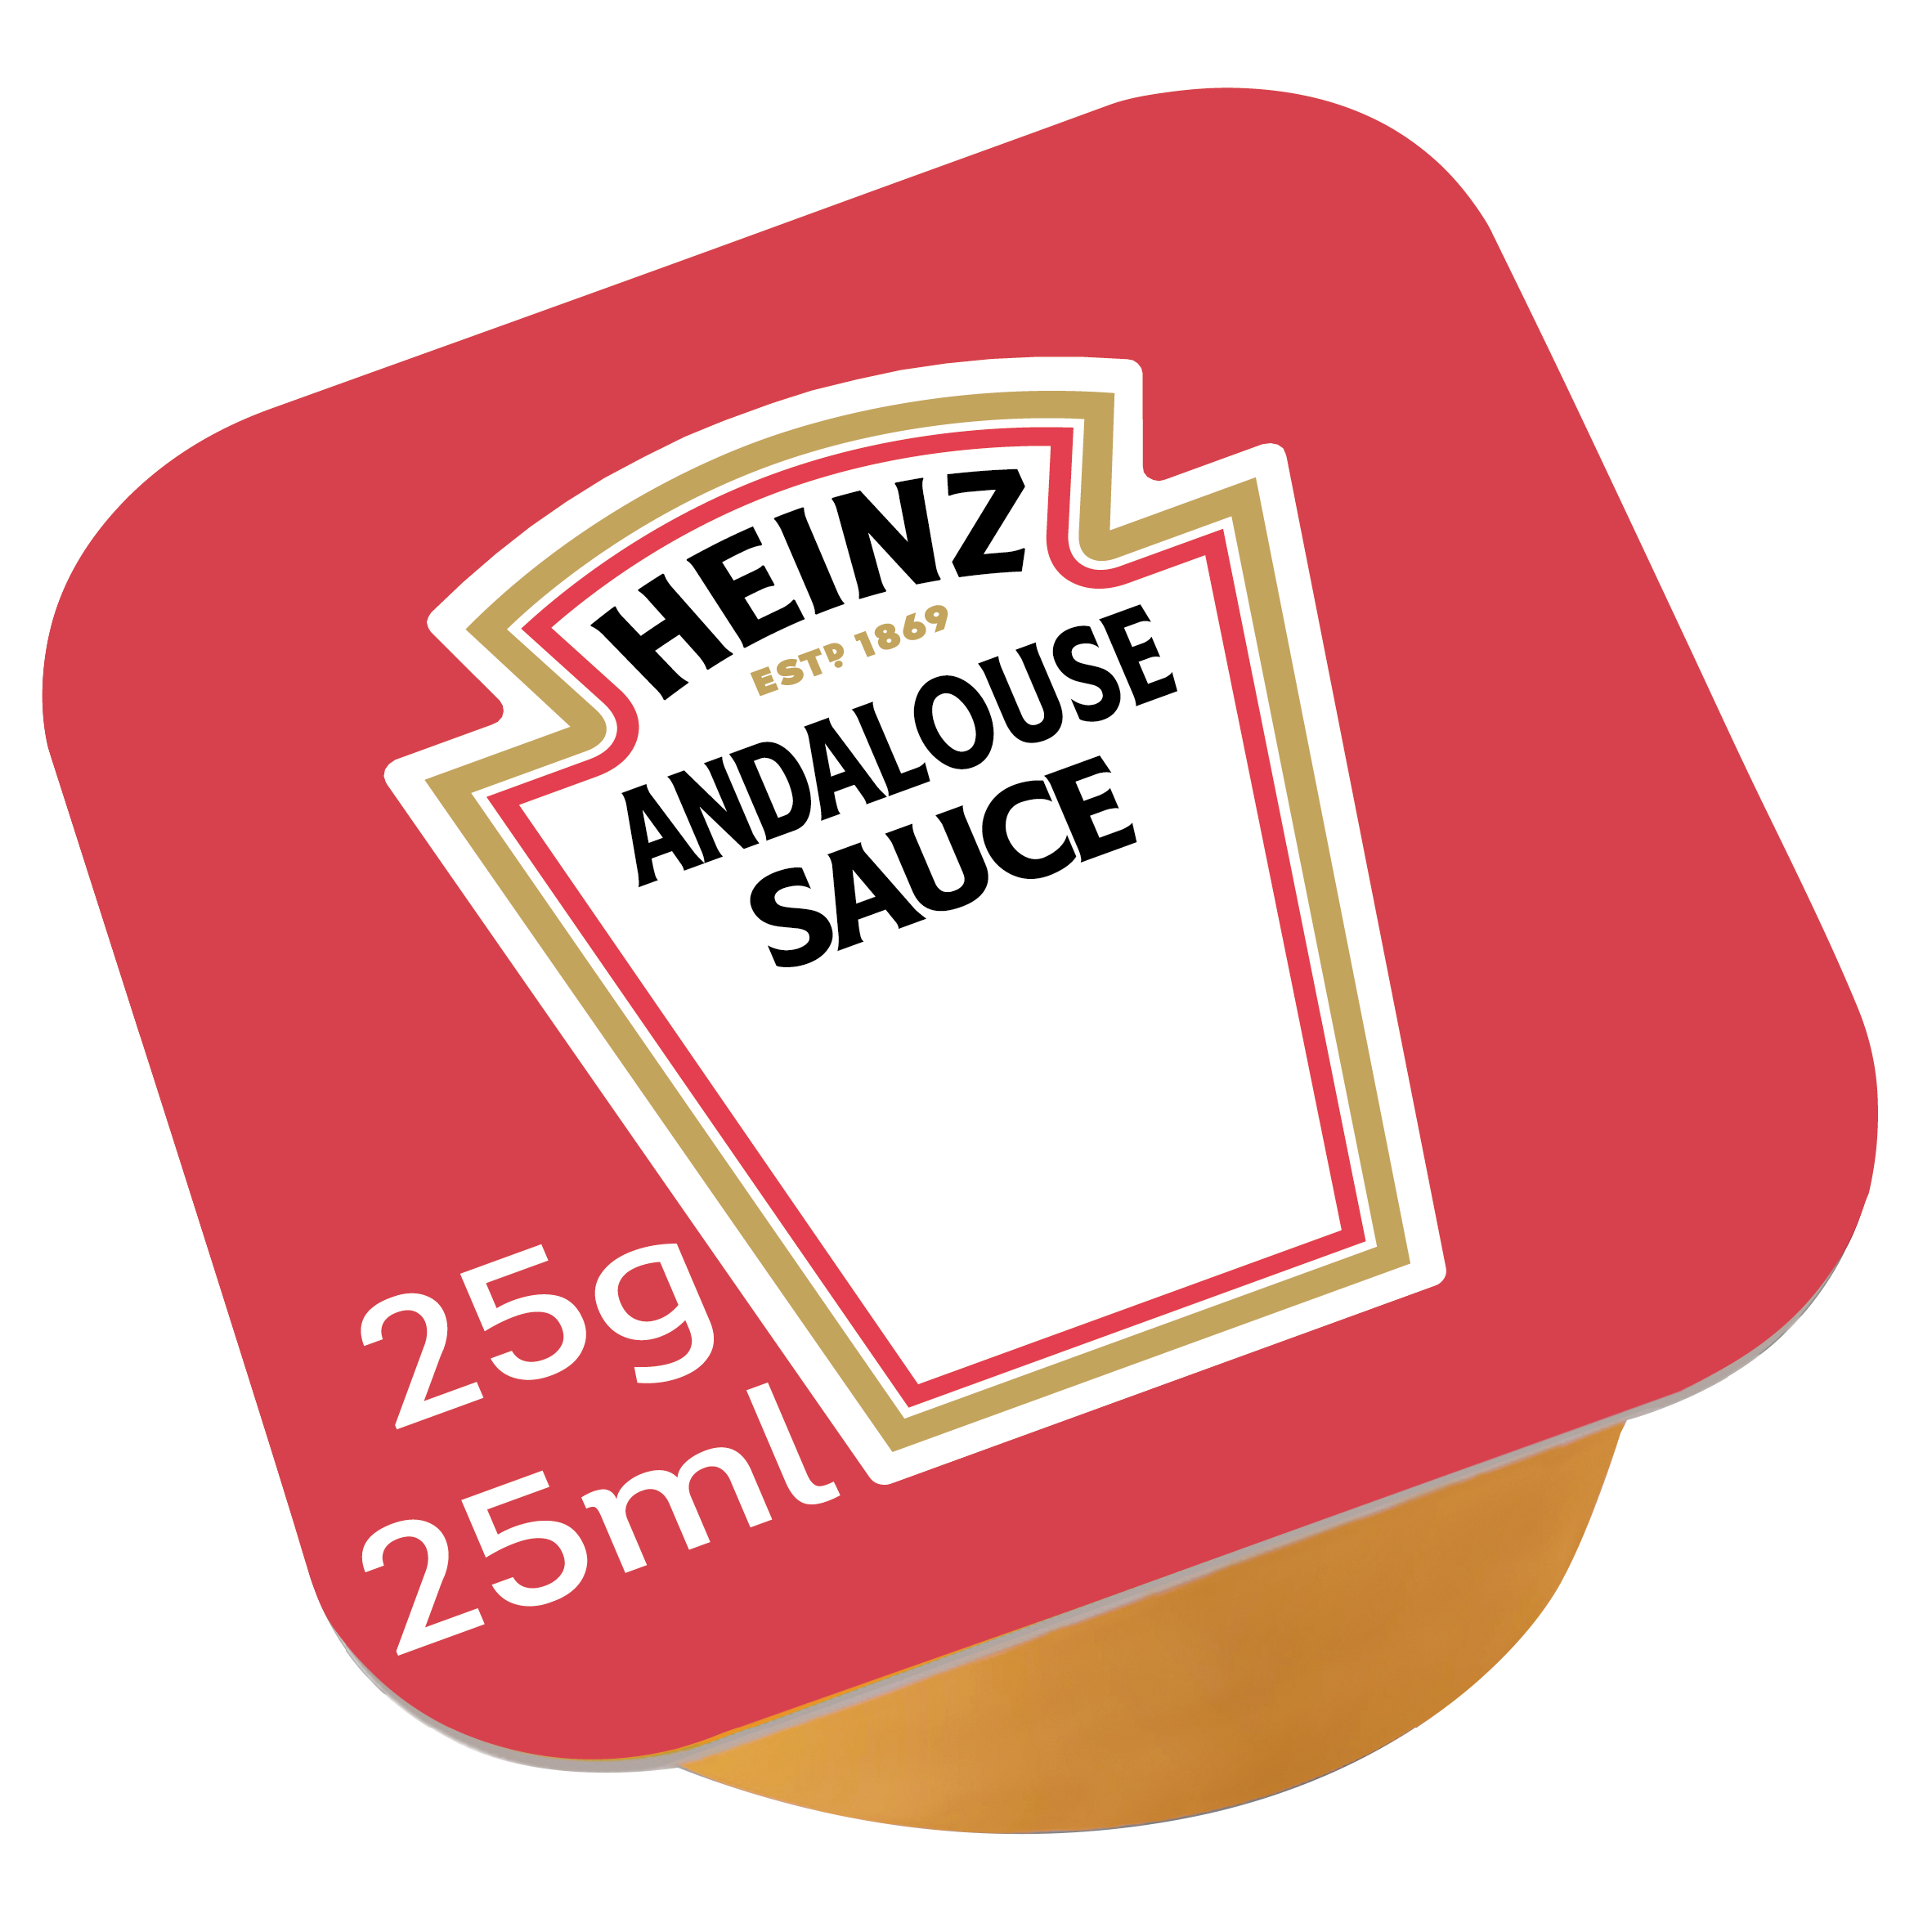 Heinz Andalouse 25g Coupelle image